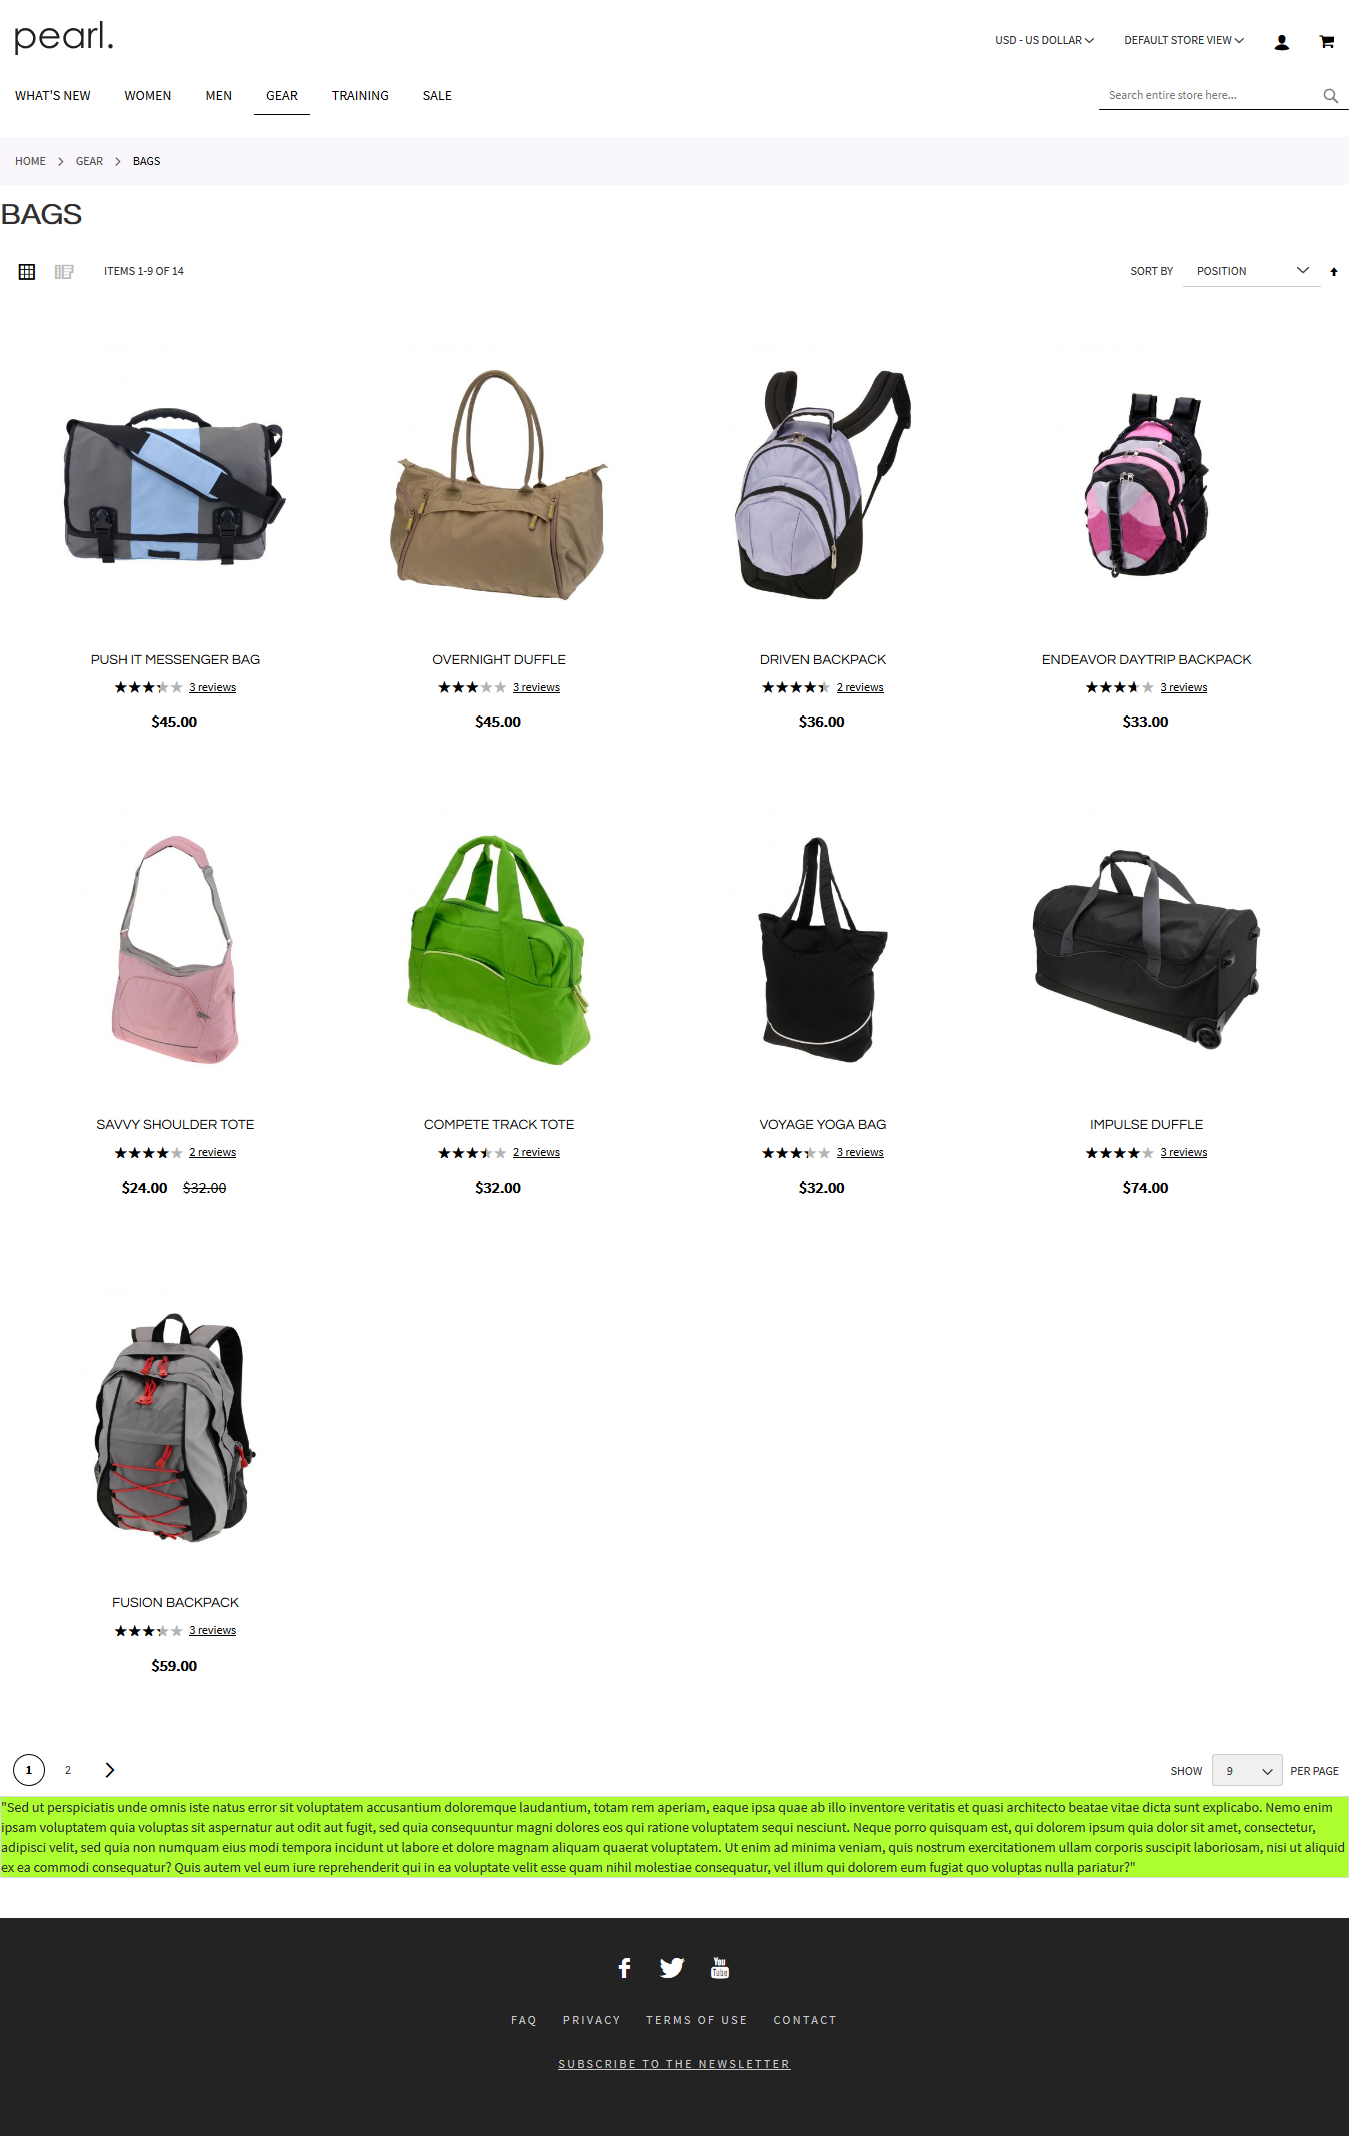 Screenshot-2018-2-2_Bags_-_Gear_3_.png